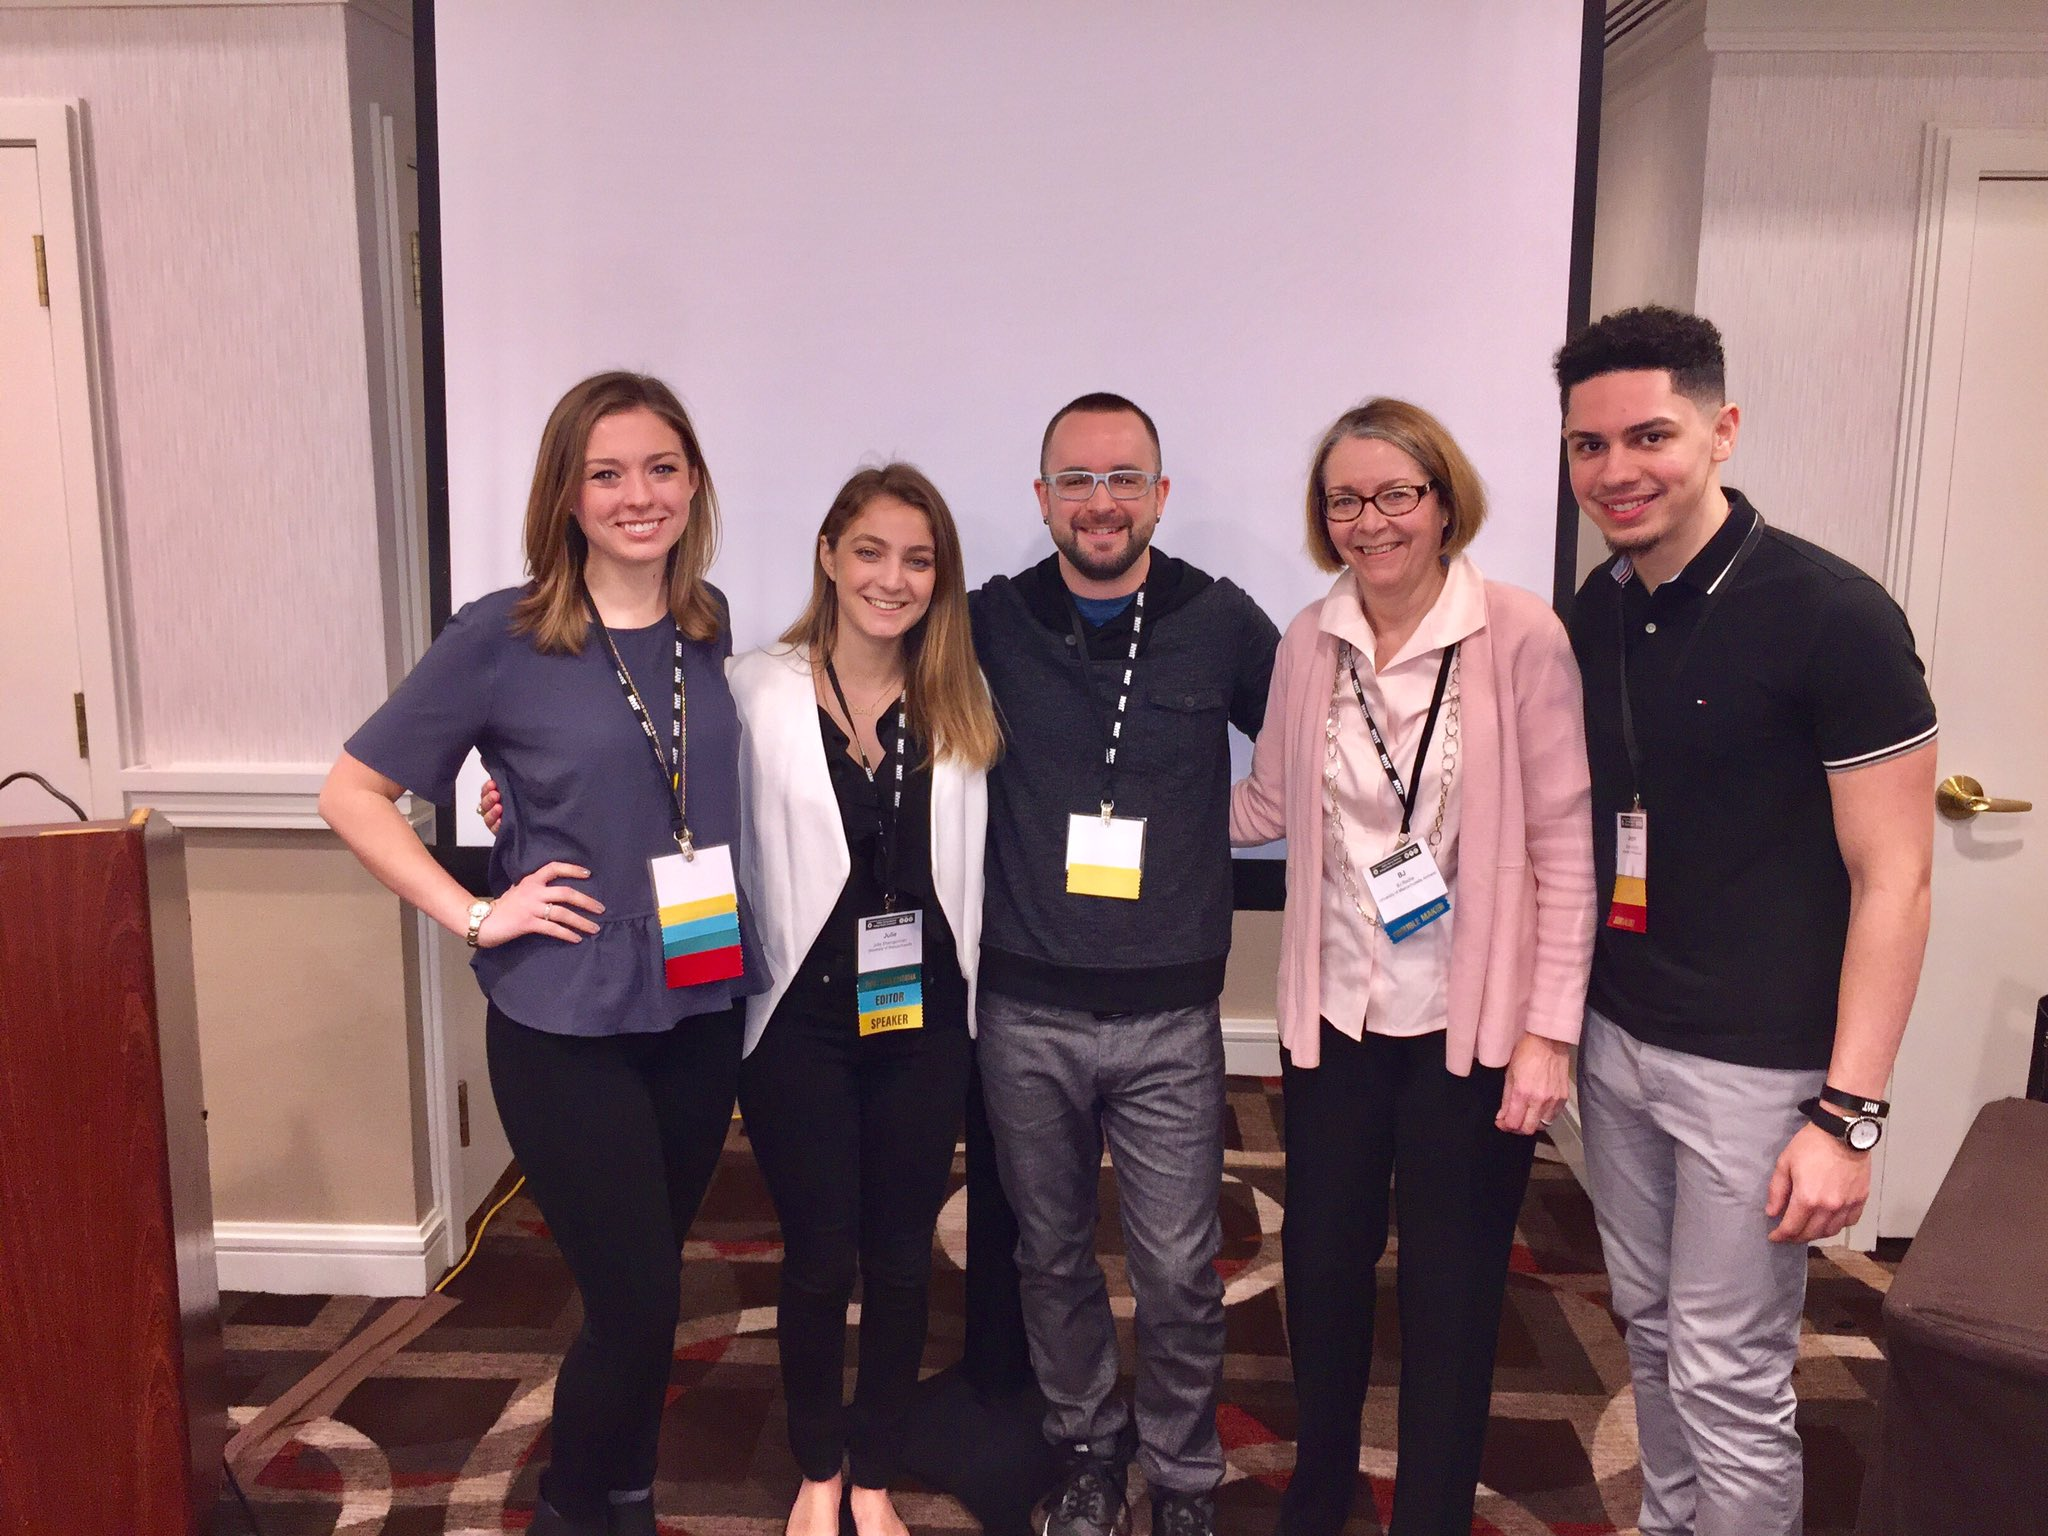 Congrats to @AmherstWire editors for presenting on FB Live @collegetalk. We are so proud! 👏🏻 #cmanyc17 https://t.co/eu5oxmqFzV